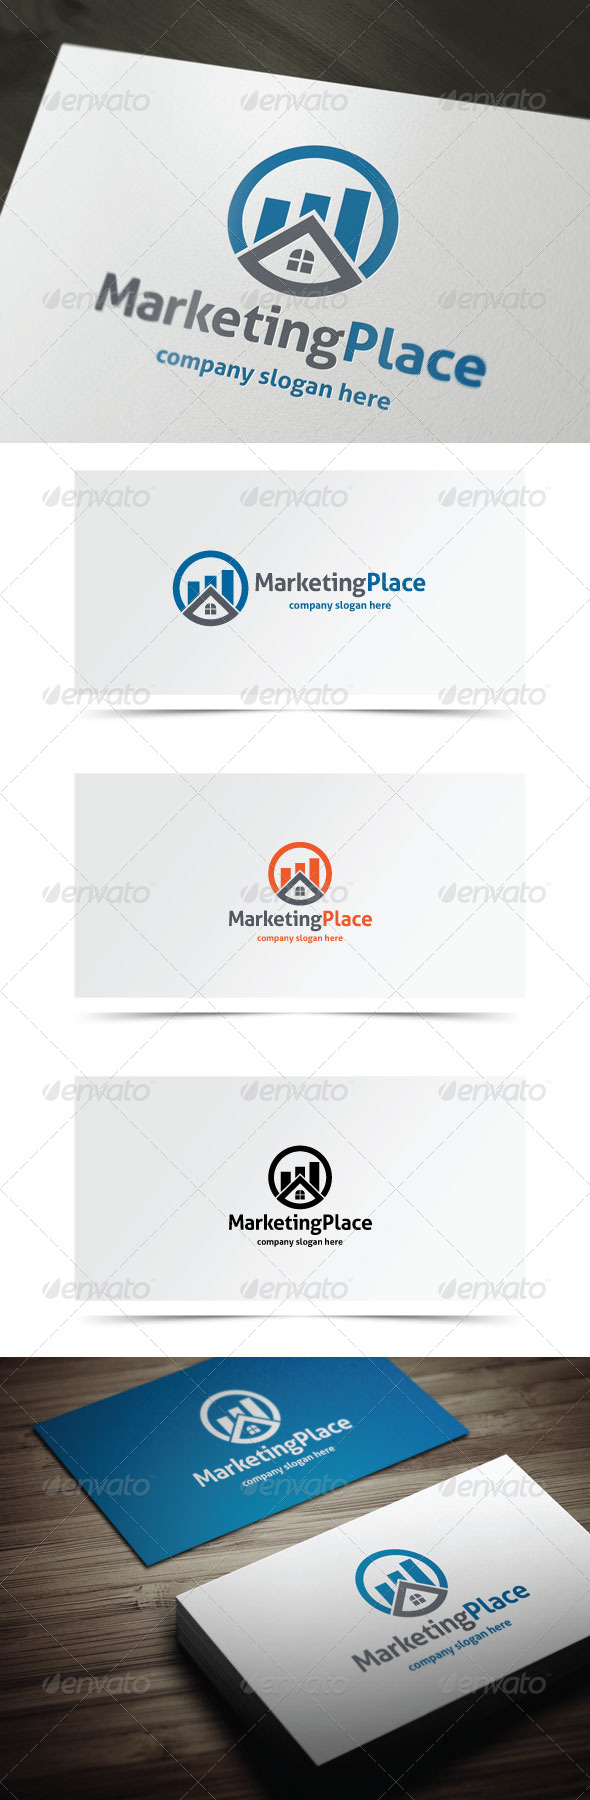 Marketing Place - Objects Logo Templates